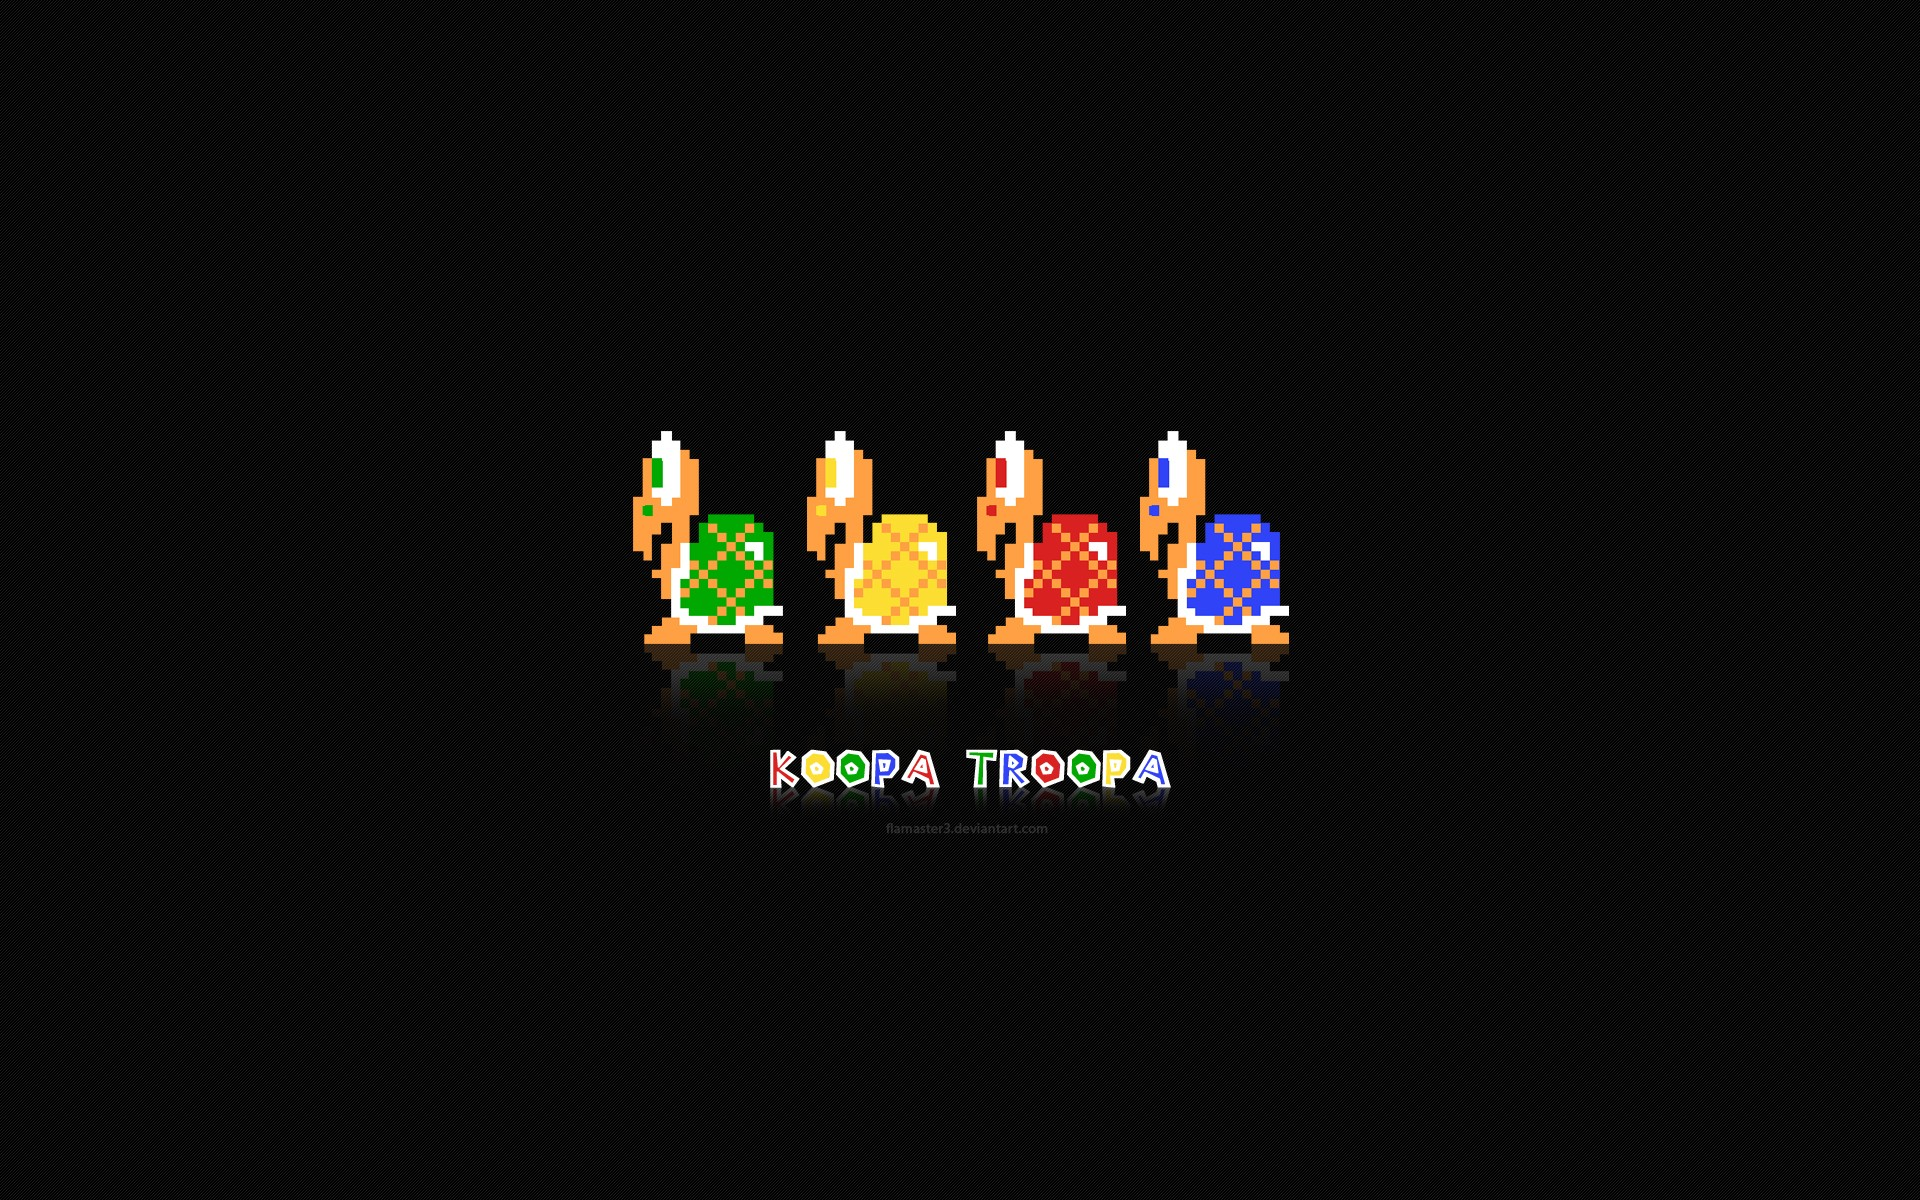 retro gaming wallpapers - photo #36